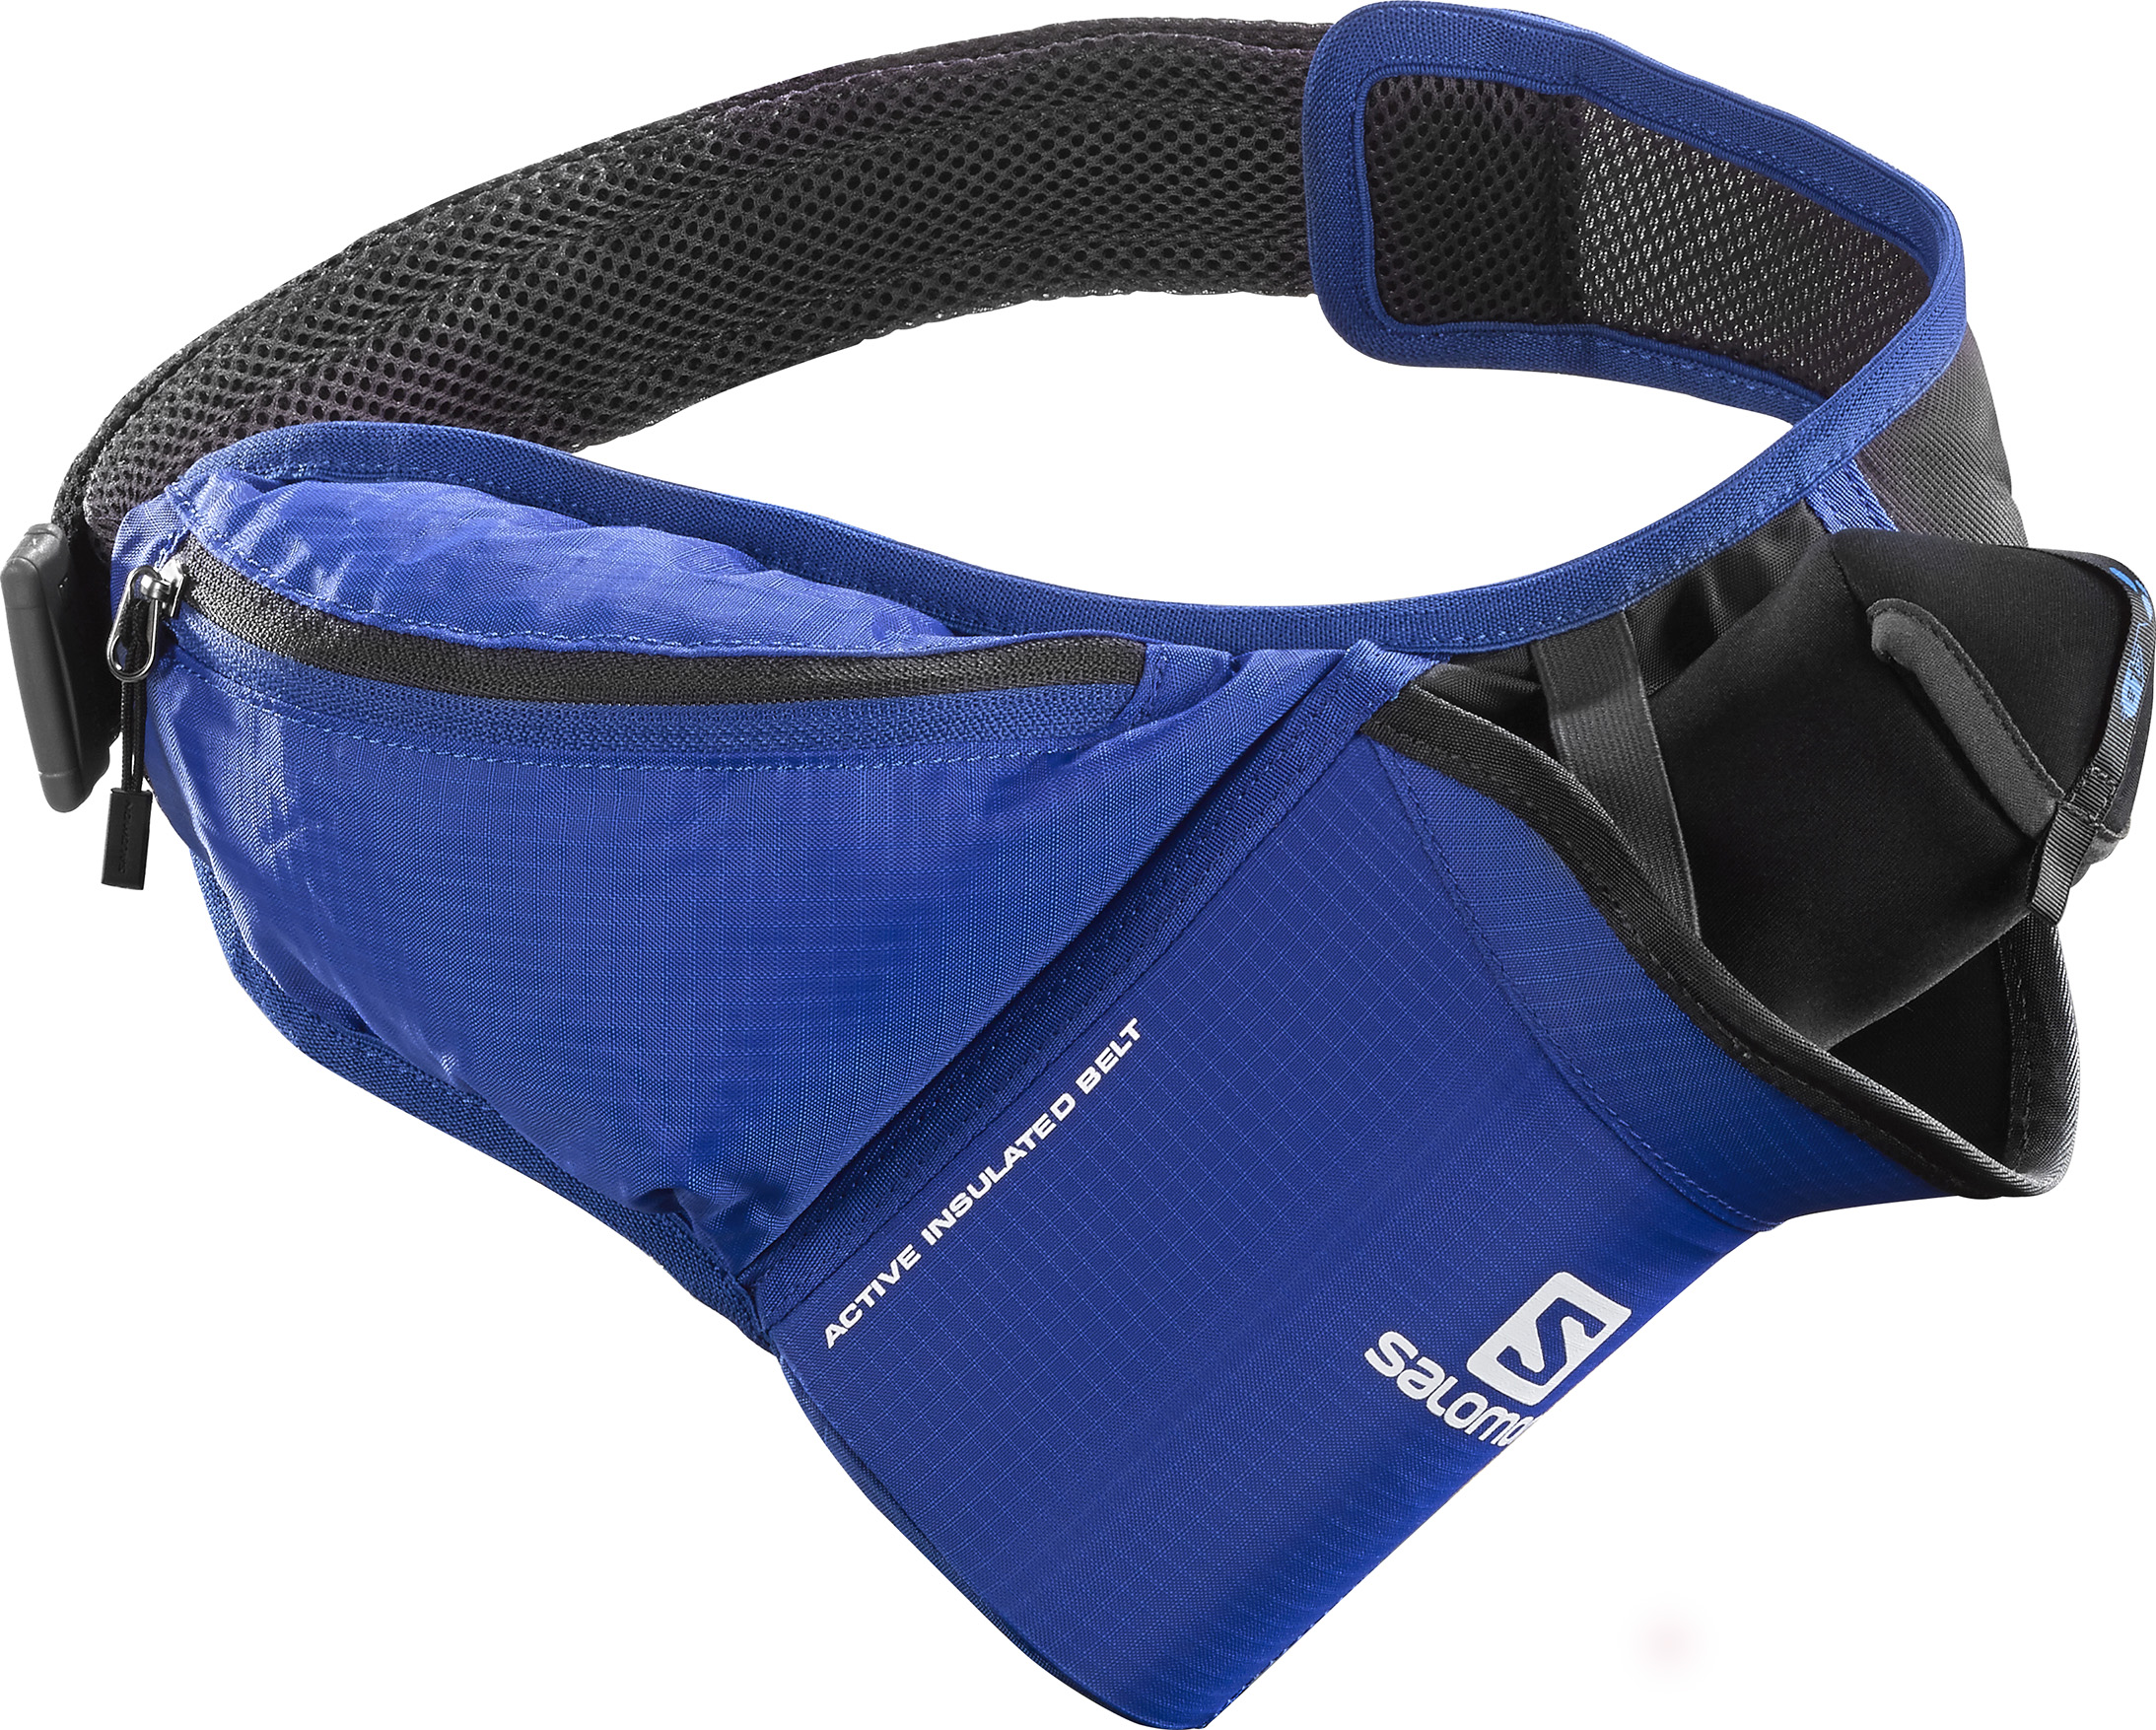 SALOMON ACTIVE INSULATED BELT - Blue Yonder/Asph L38257500